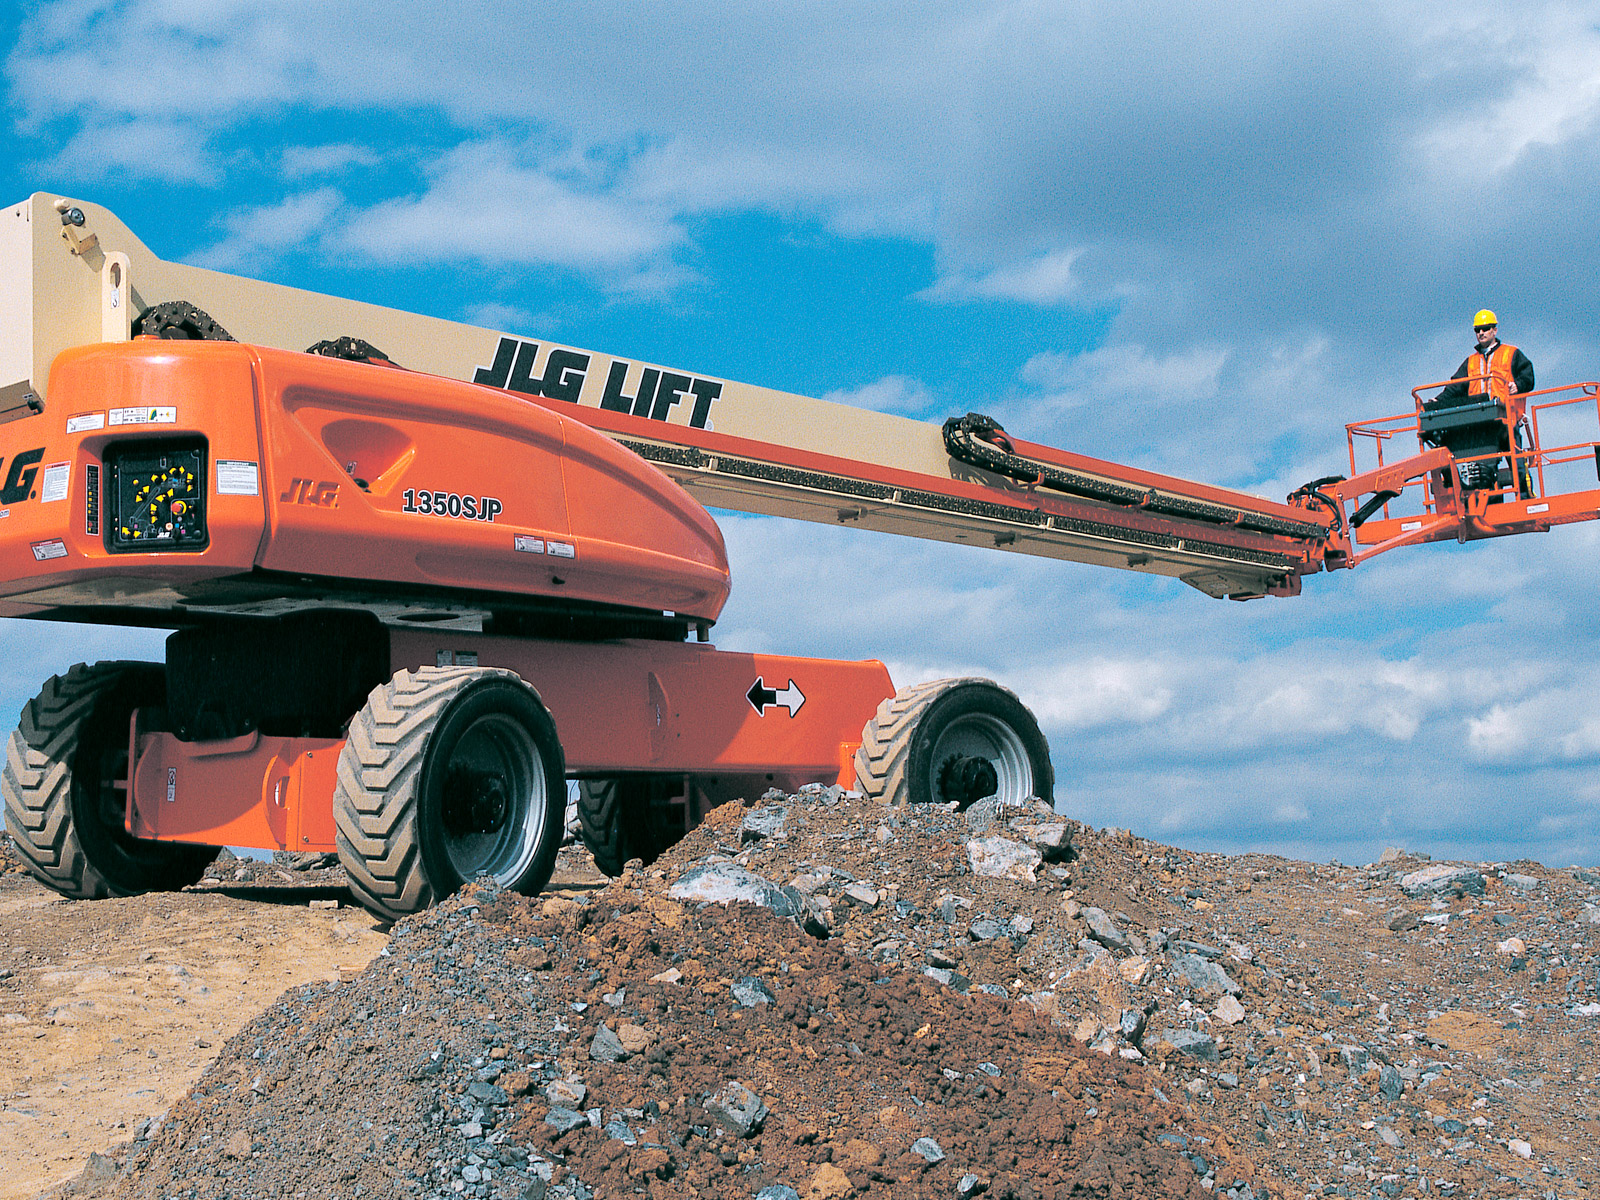 1350sjp driving?w=100 1350sjp telescopic boom lift jlg  at crackthecode.co